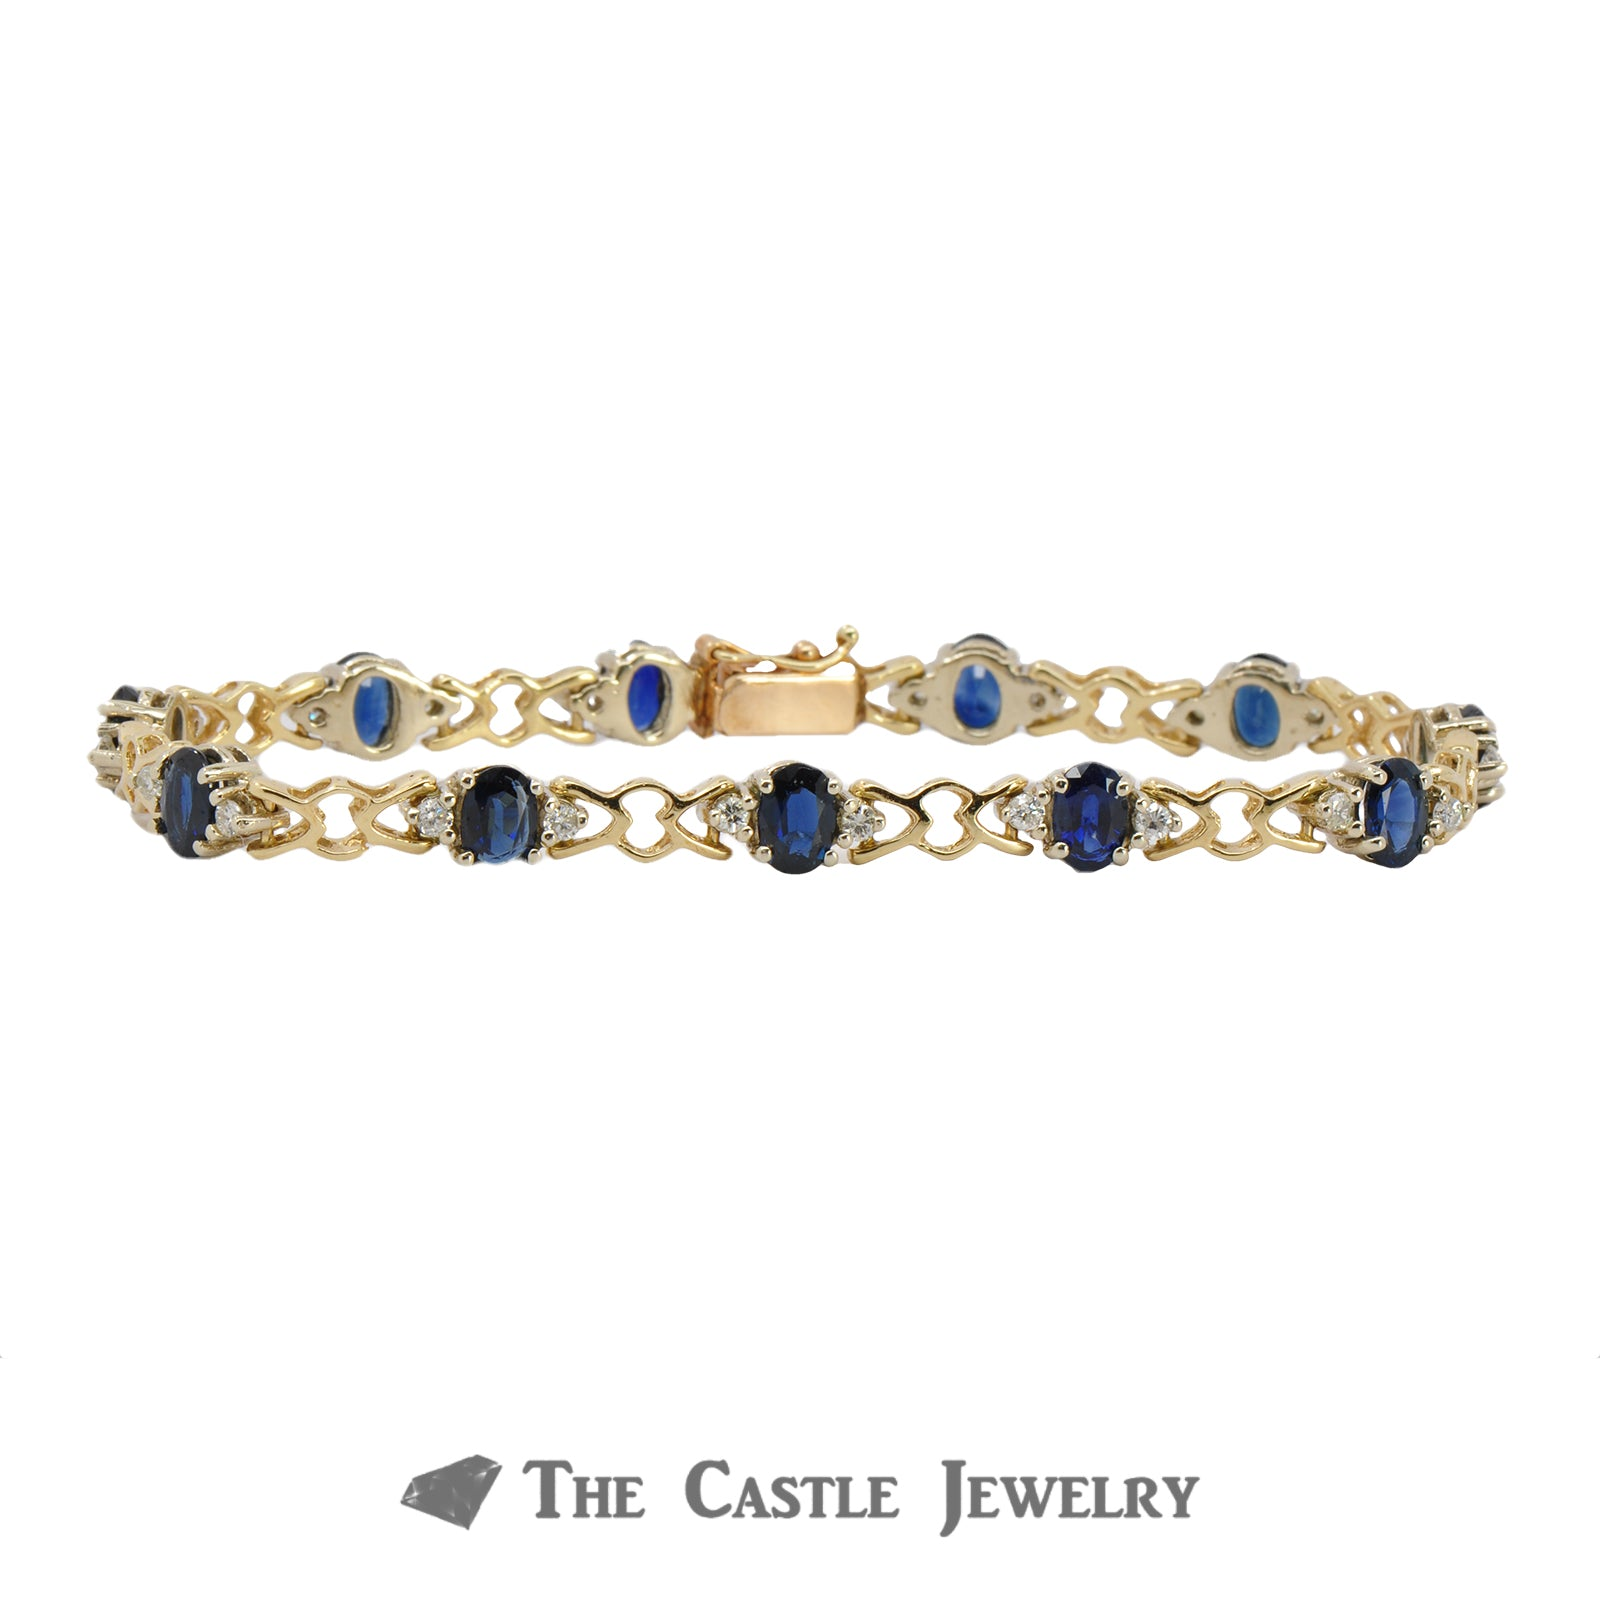 Oval Sapphire Bracelet with Diamond & Heart Accents in 14K Gold-0